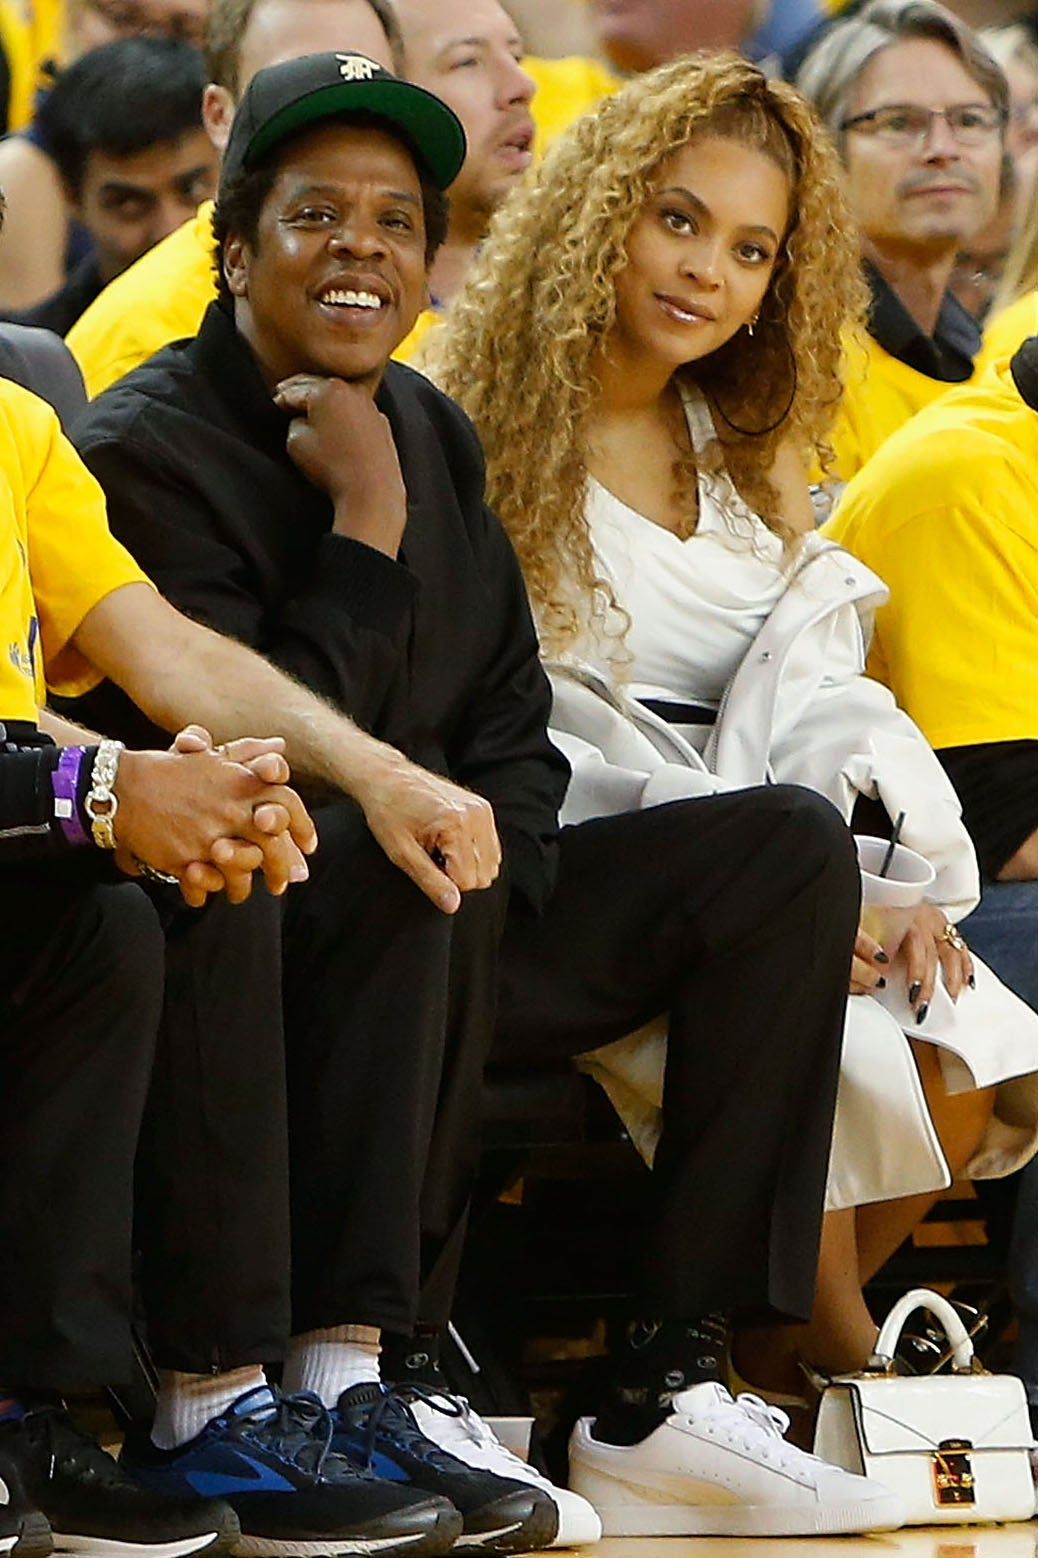 37246b2e109be7 Beyoncé And JAY-Z Had Another Flawless Courtside Date Night at the NBA  Playoffs